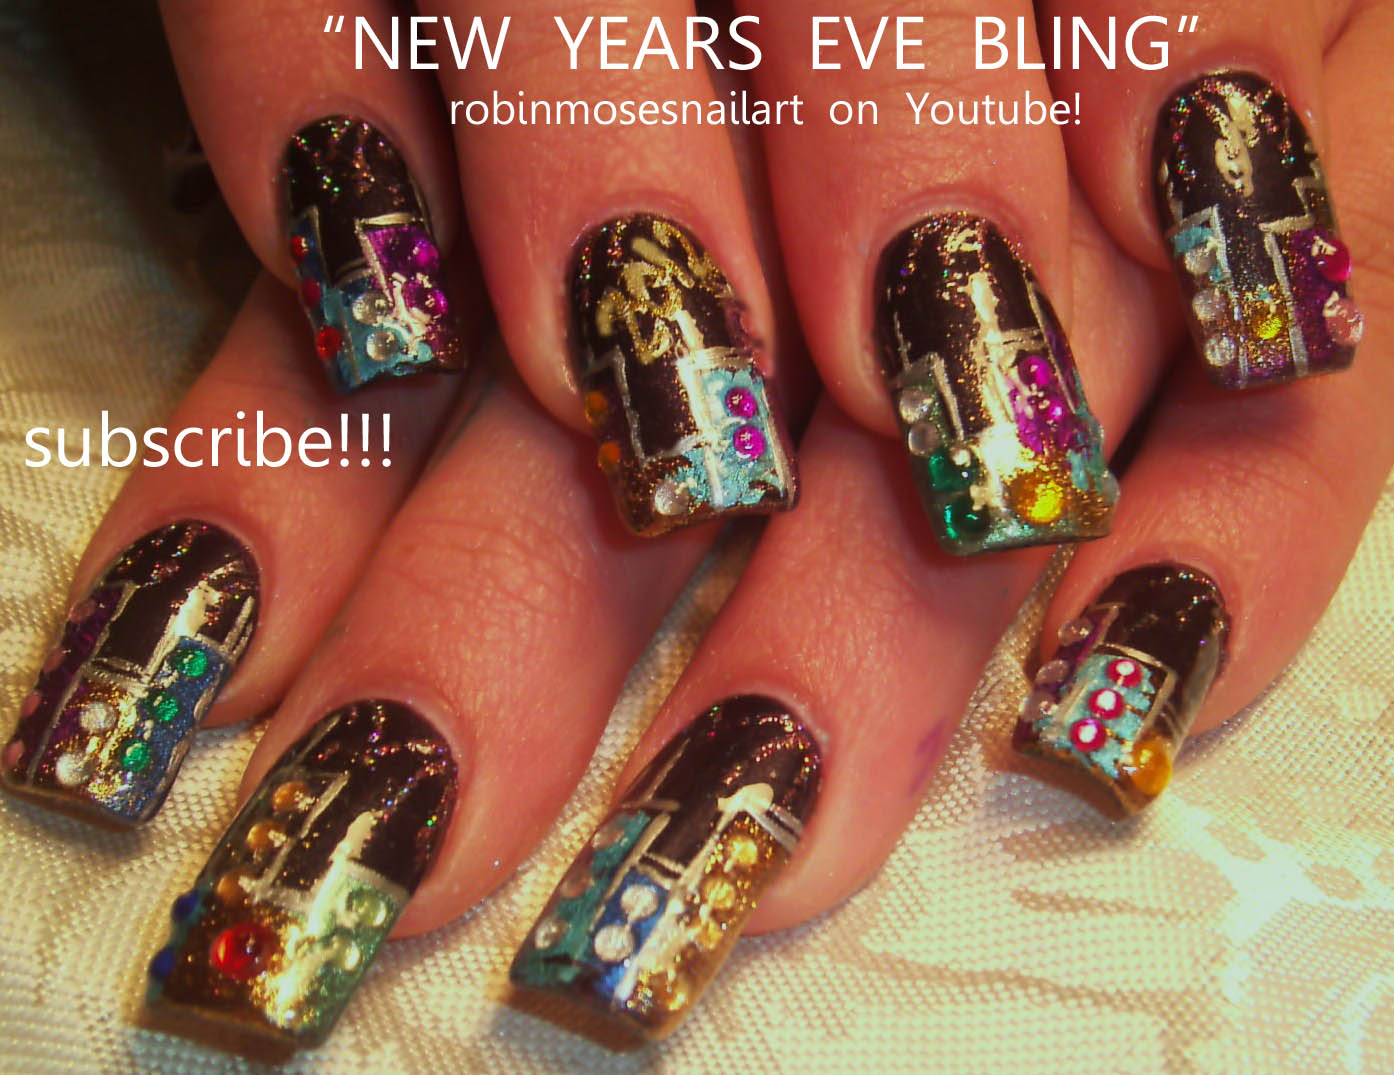 Nail designs new nail art designs new20years20eve20bling prinsesfo Images